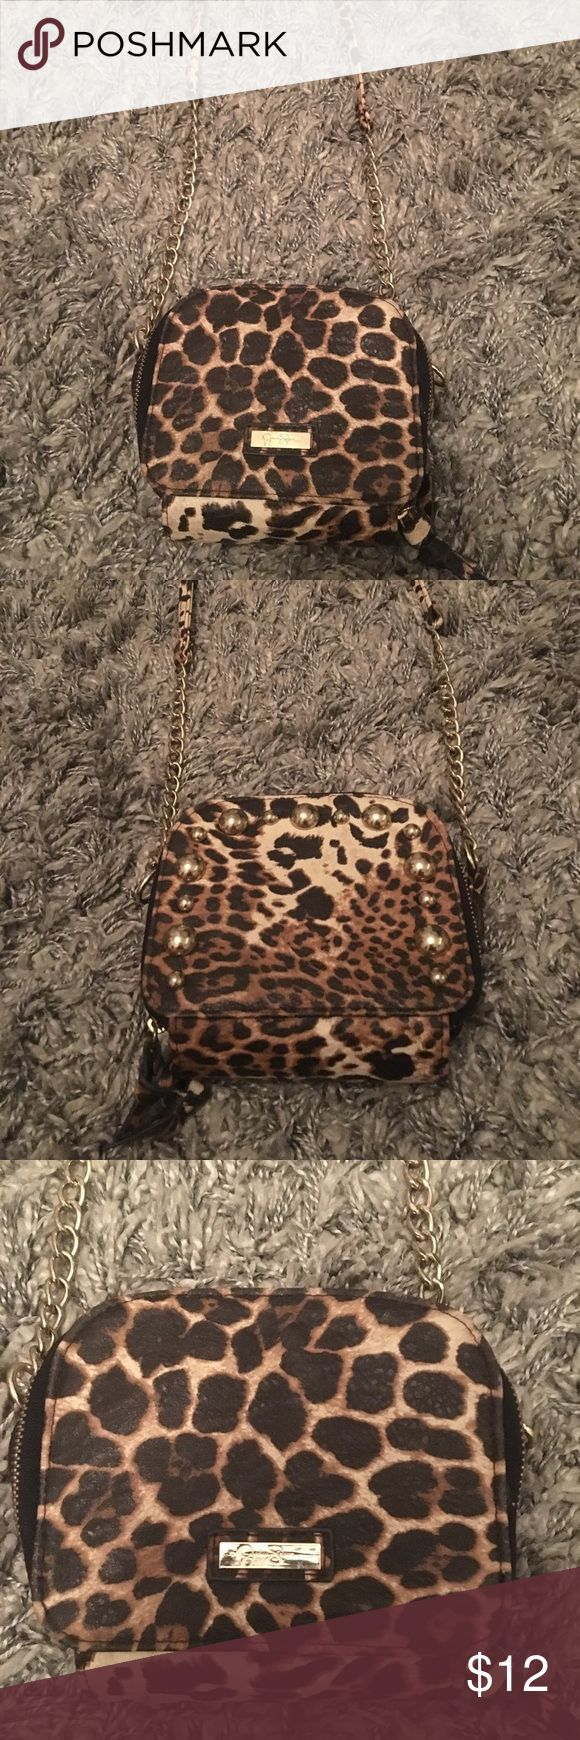 Jessica Simpson leopard cross-body purse NWOT This bag is in perfect condition, I've never worn it out. The bag is funky and cute and perfect for any solid color outfit! Has two great compartments to hold anything you could need including multiple cards and cash! Happy to negotiate and answer any questions. 😊 Jessica Simpson Bags Crossbody Bags